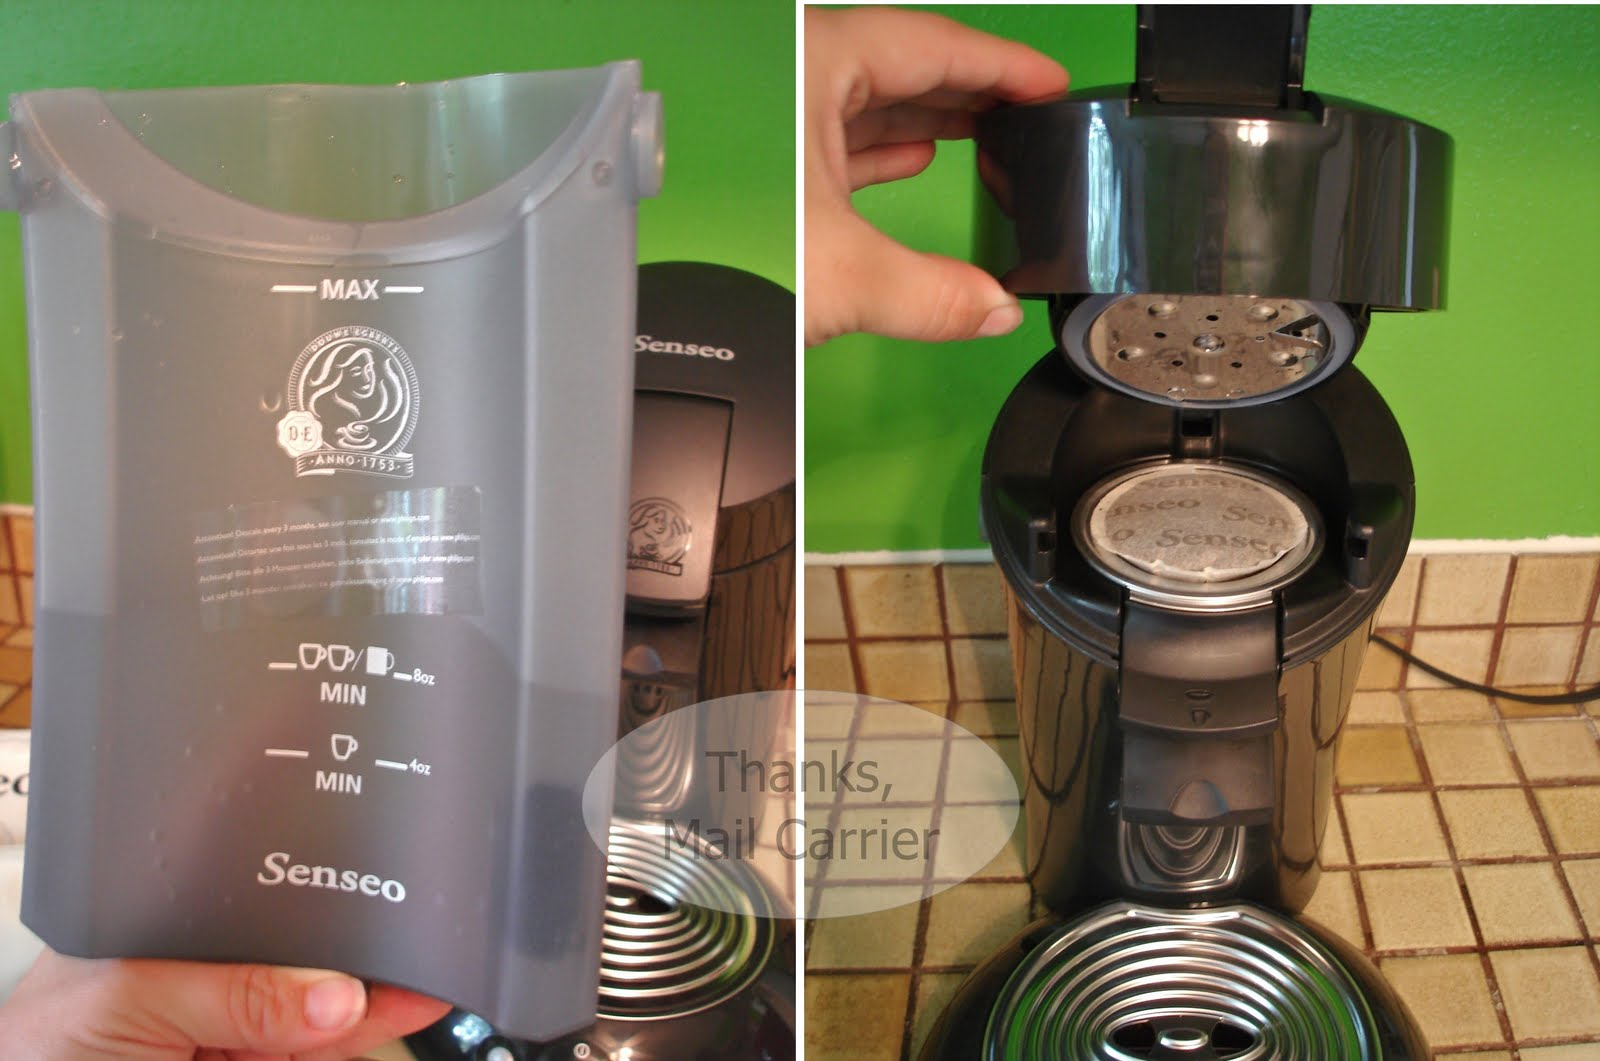 Senseo Coffee Maker Blinking Red Light : Thanks, Mail Carrier Anniversary Bash #8: Senseo Single-Serve Gourmet Coffee Machine {Review ...